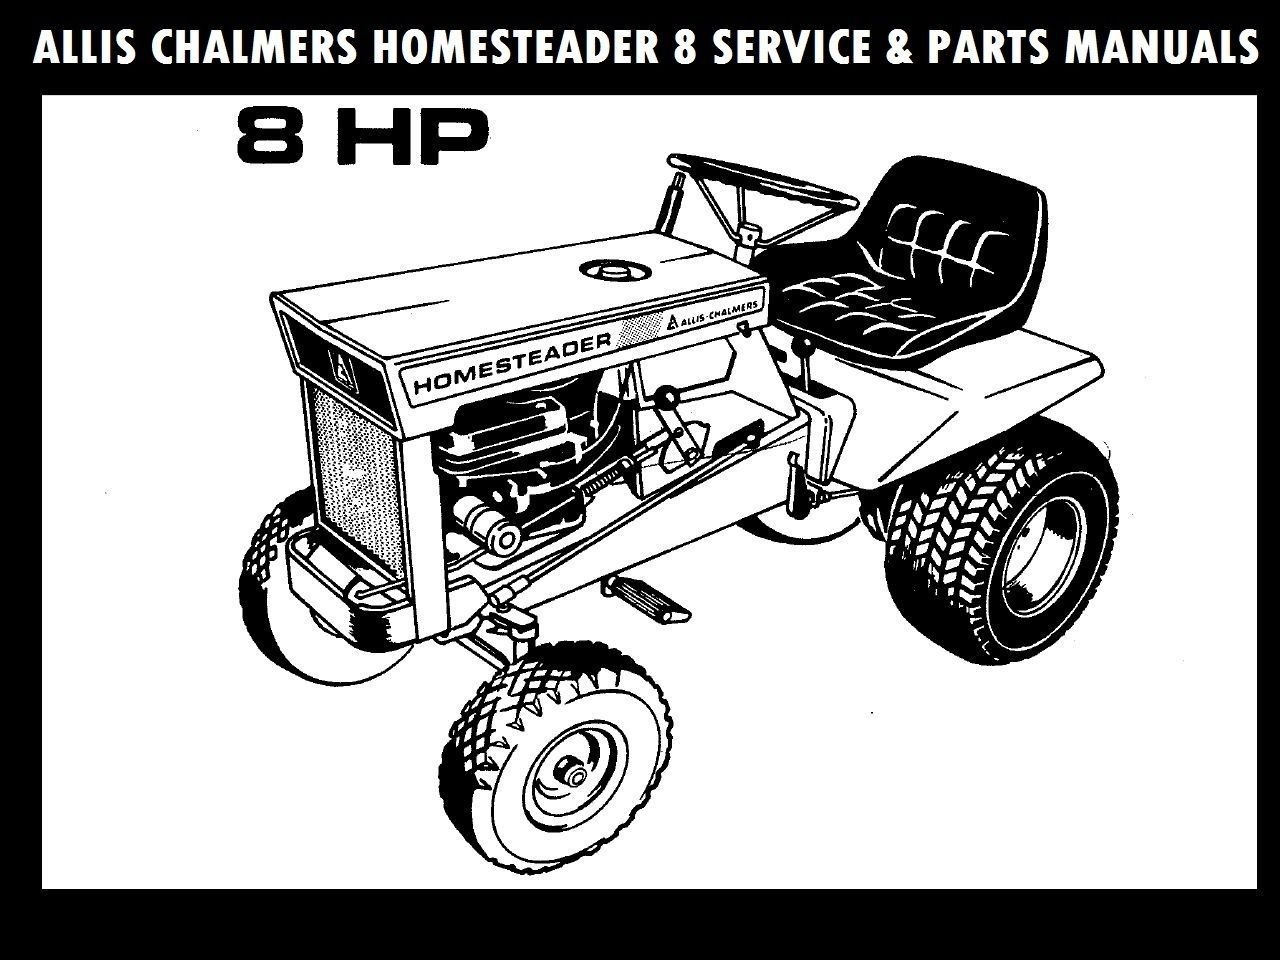 ALLIS CHALMERS HOMESTEADER 8 SERVICE & PARTS MANUALs for